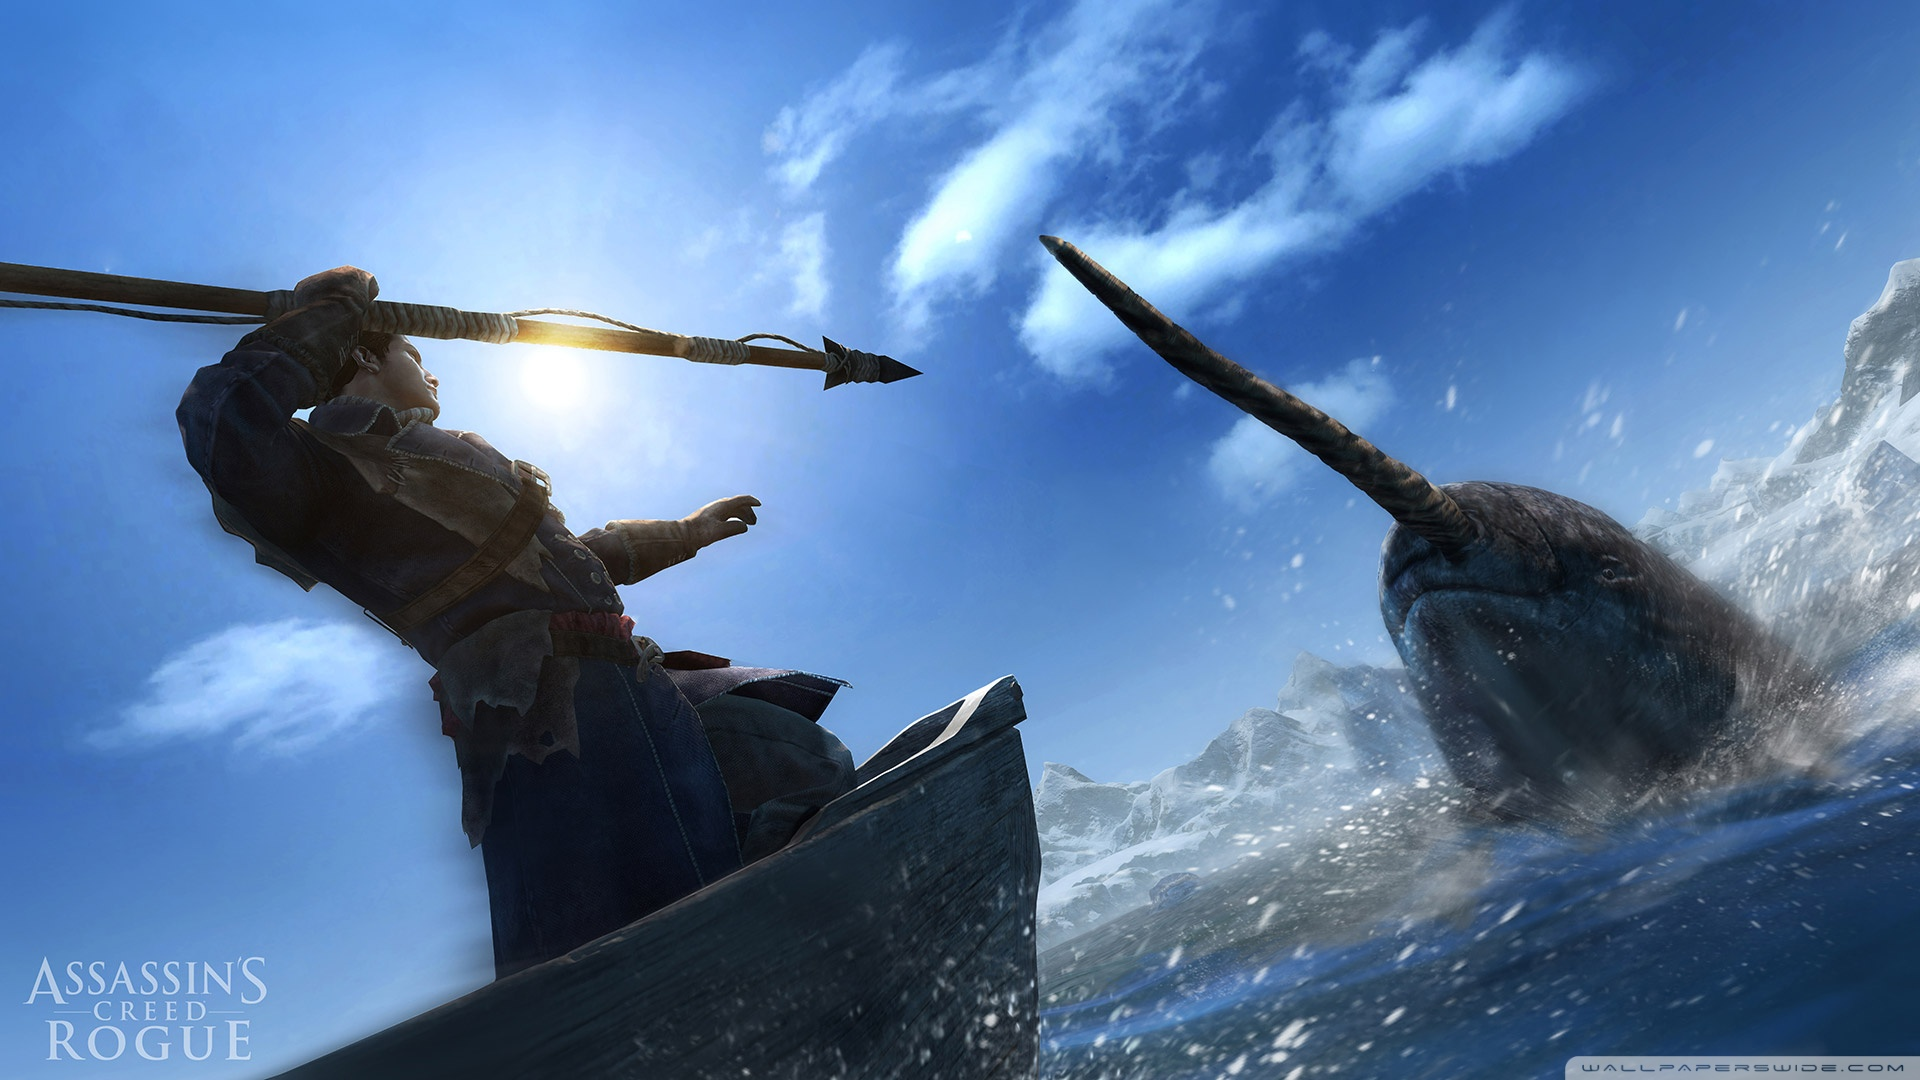 WallpapersWide com | Assassin's Creed HD Desktop Wallpapers for